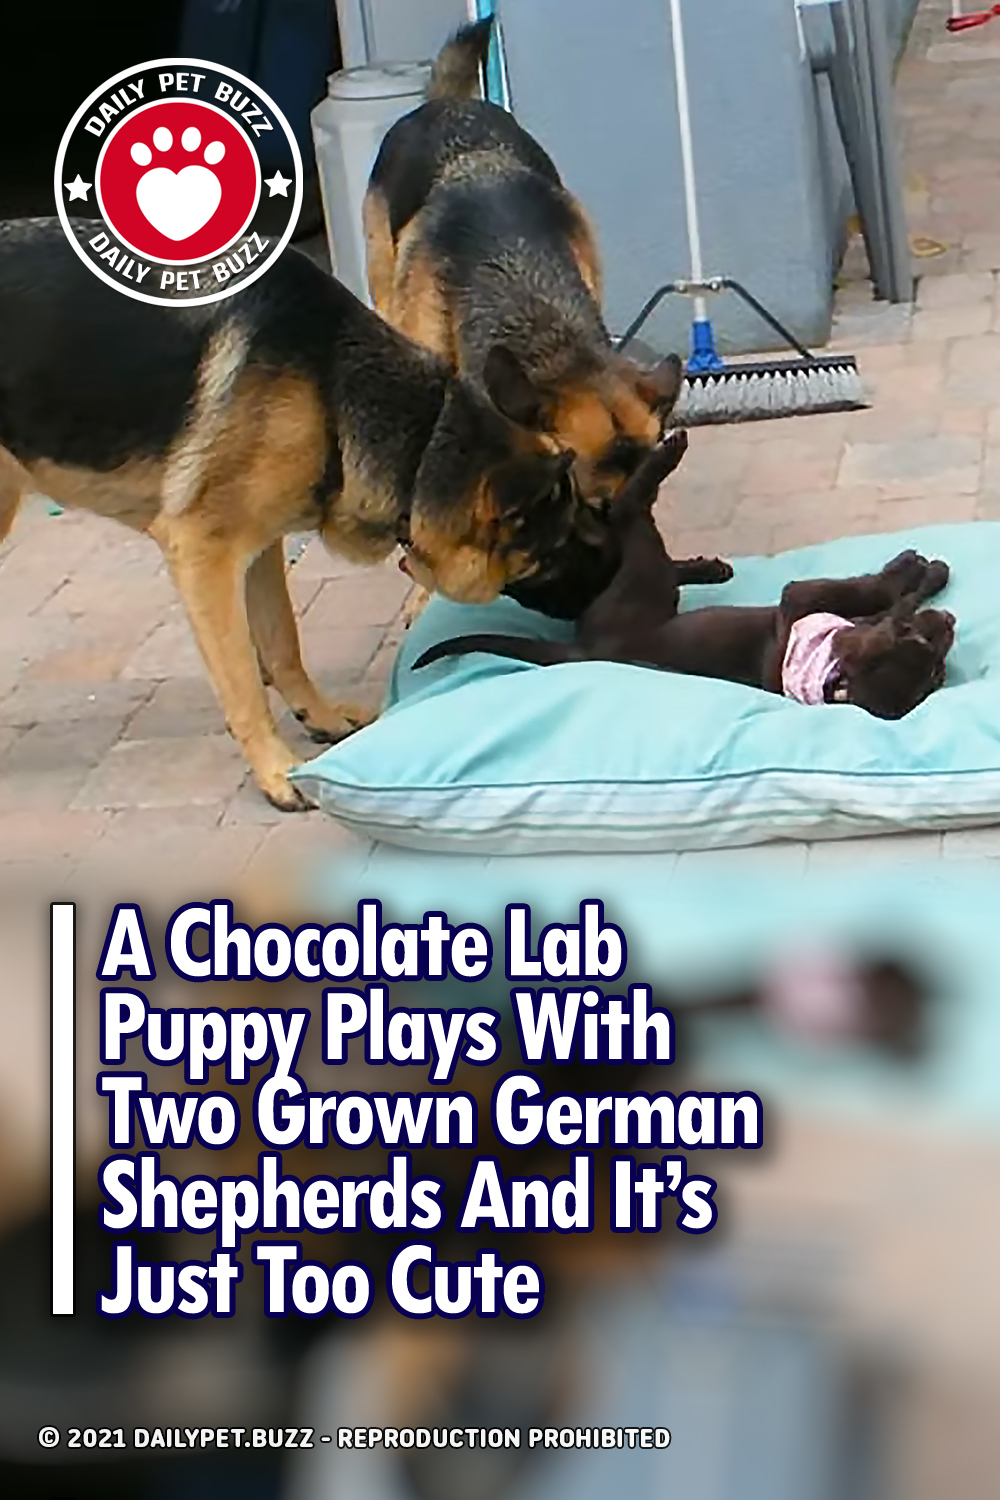 A Chocolate Lab Puppy Plays With Two Grown German Shepherds And It\'s Just Too Cute